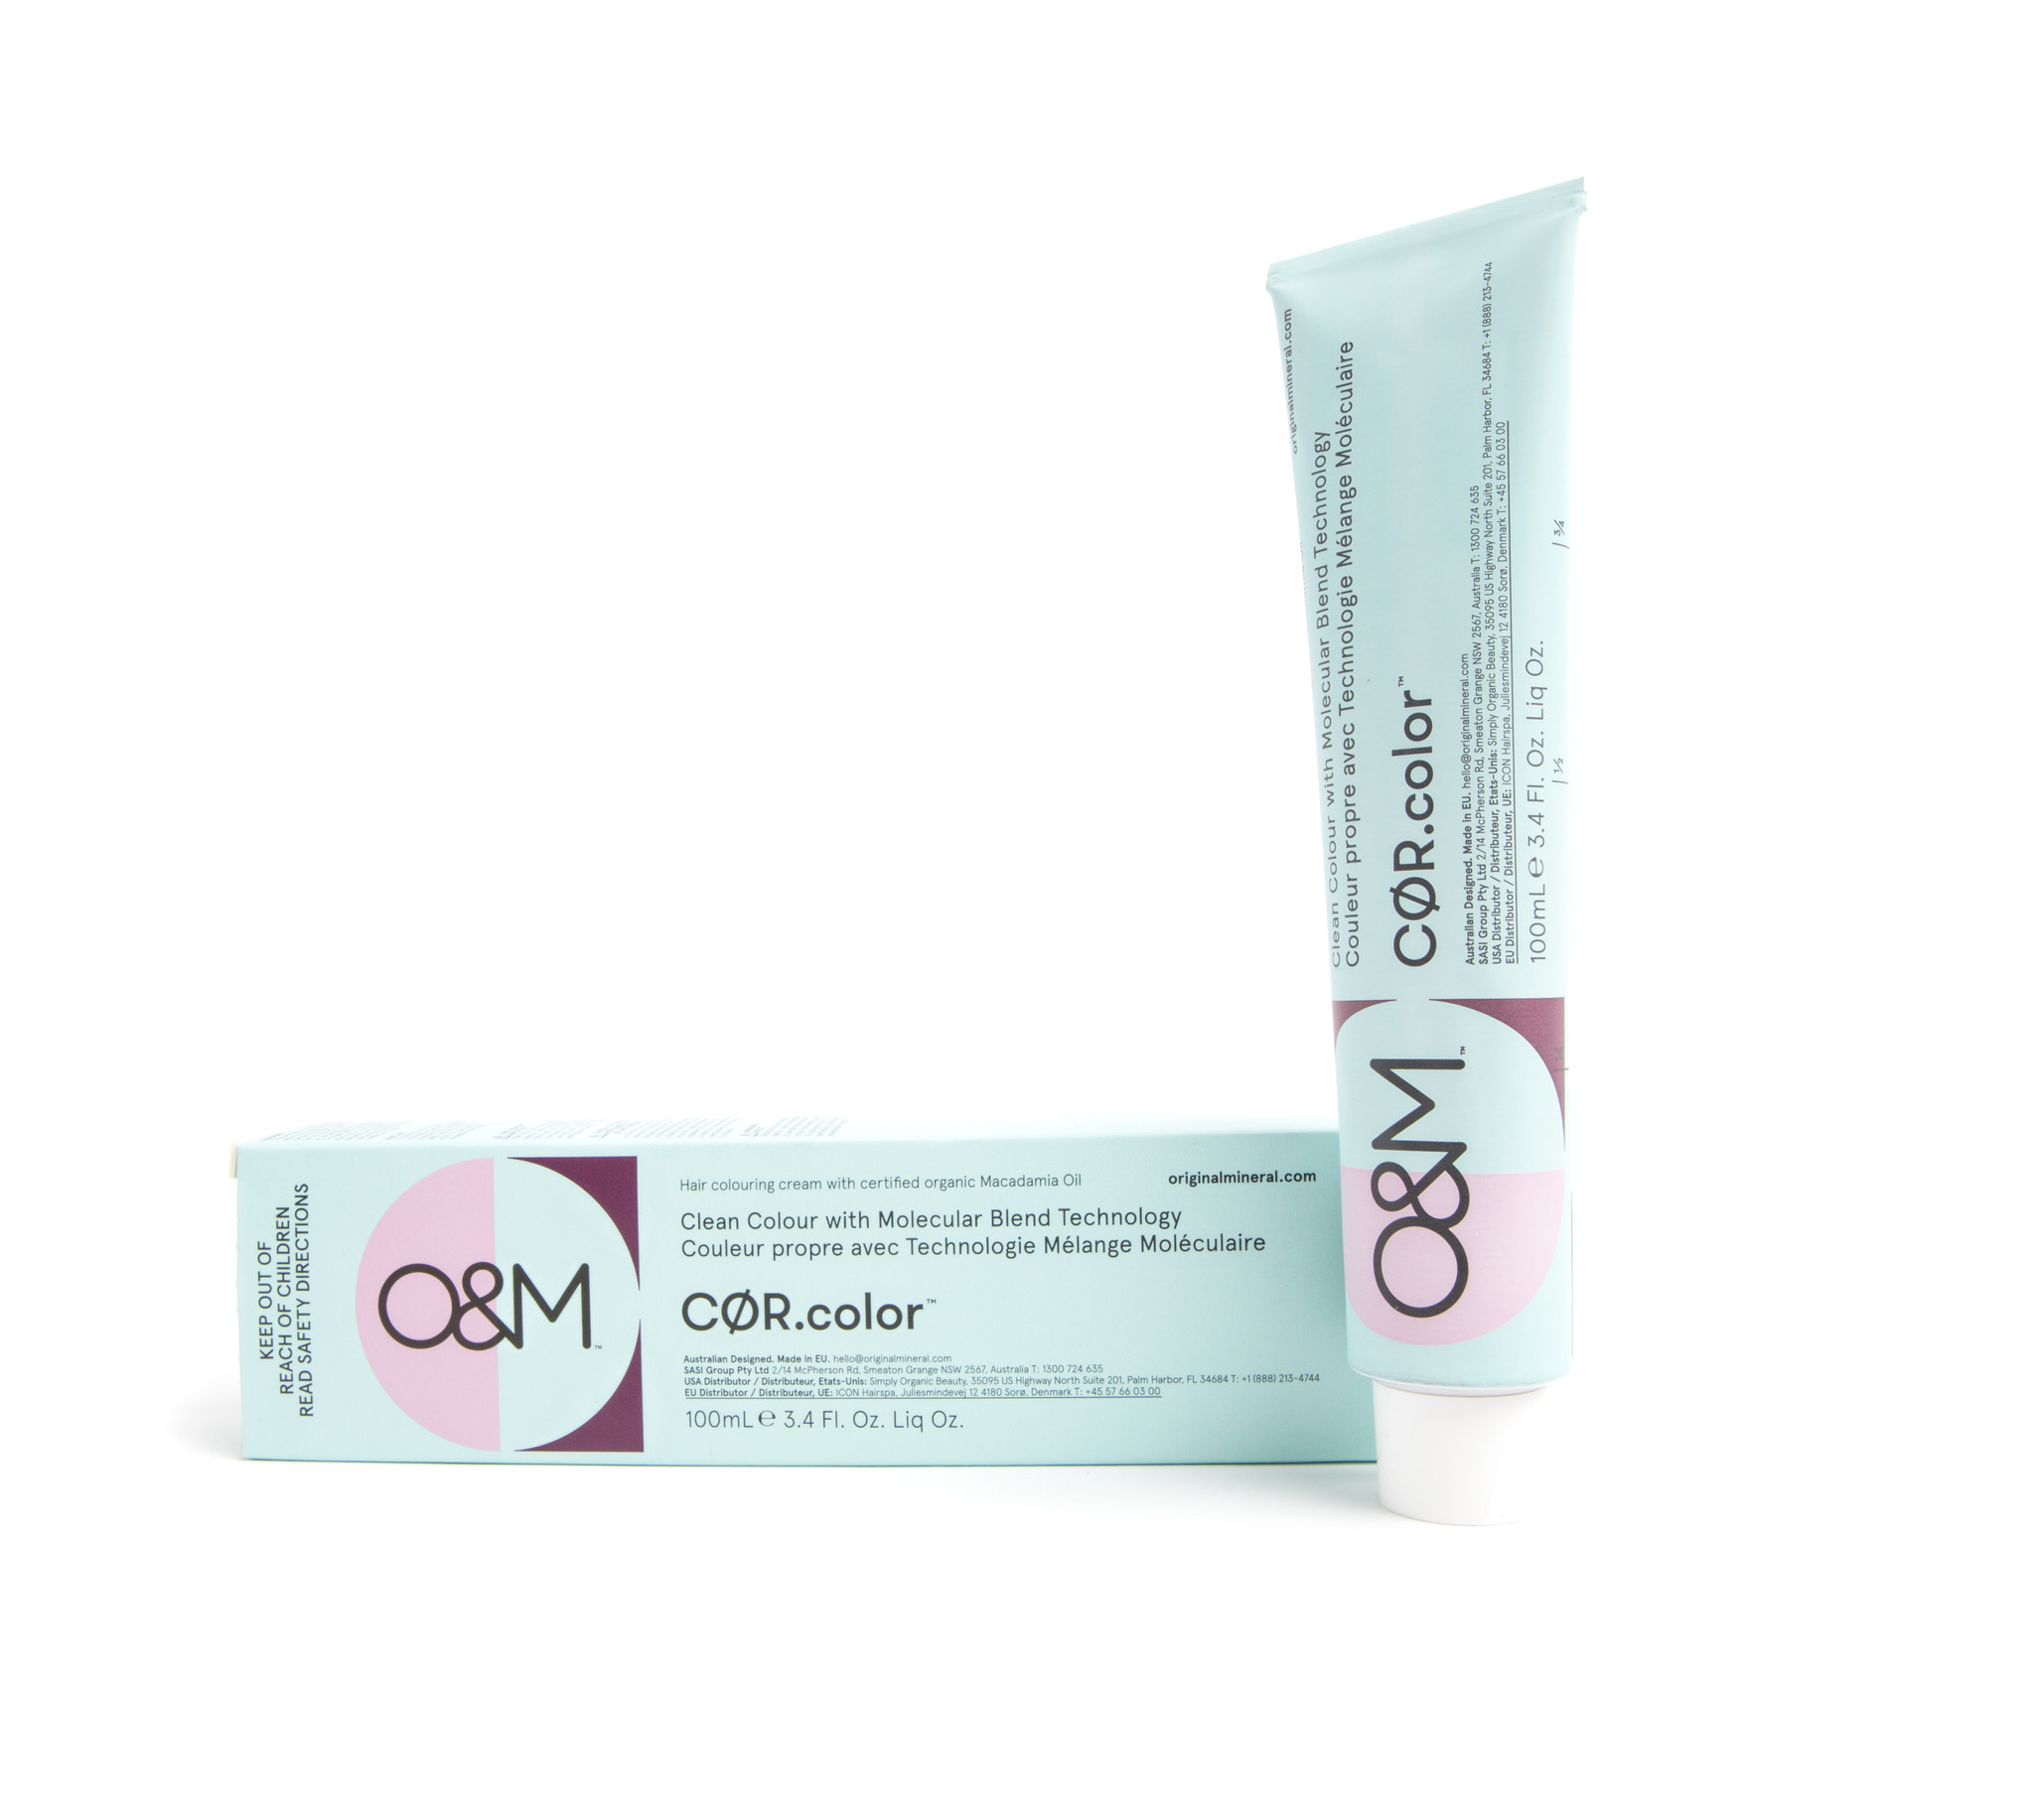 O&M - Original Mineral O&M CØR.color Lightest Violet Blonde 10.6 100g